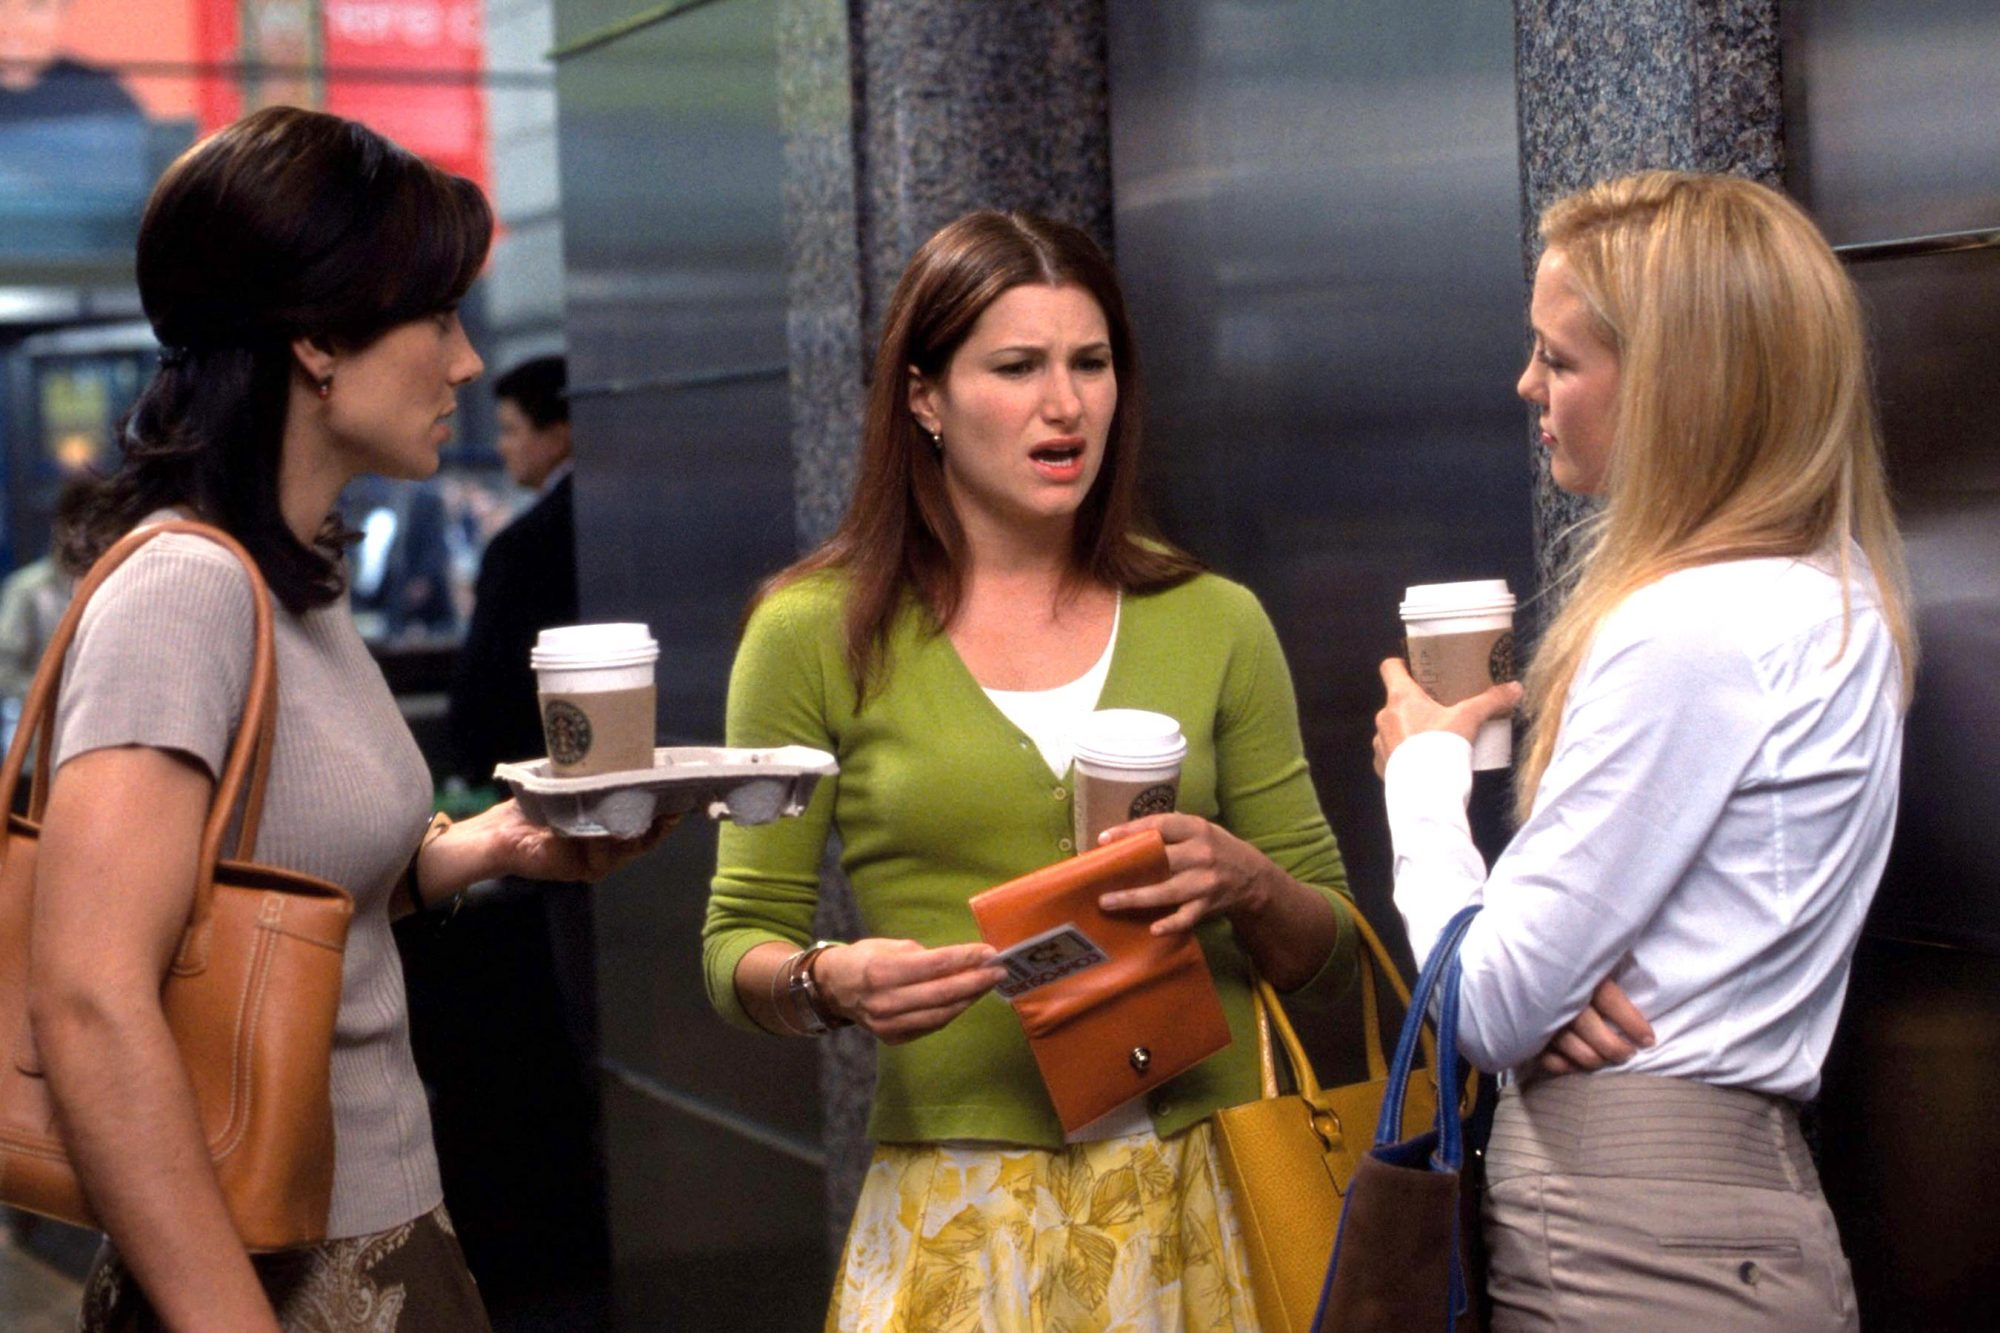 HOW TO LOSE A GUY IN 10 DAYS, Annie Parisse, Kathryn Hahn, Kate Hudson, 2003, (c) Paramount/courtesy